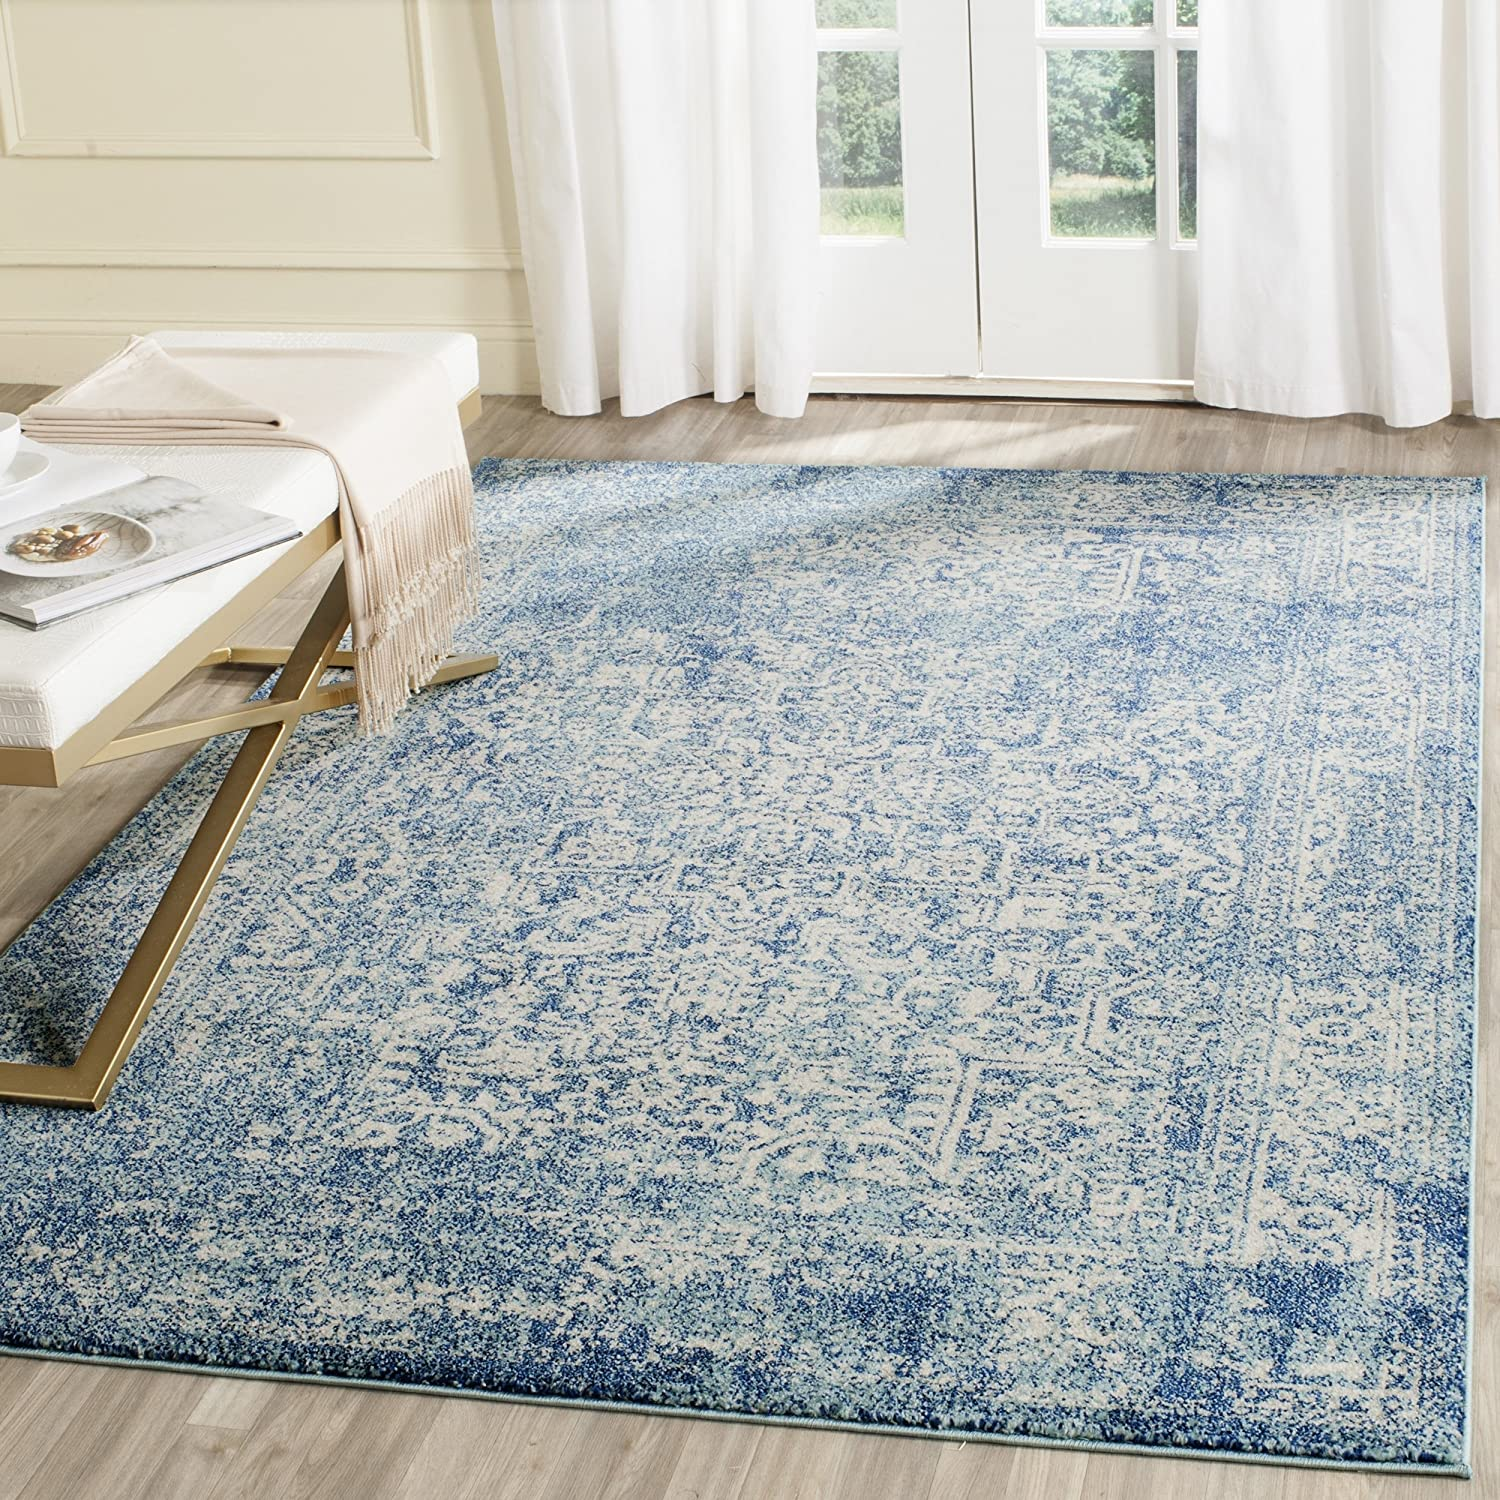 Amazon Com Safavieh Evoke Collection Vintage Oriental Blue And